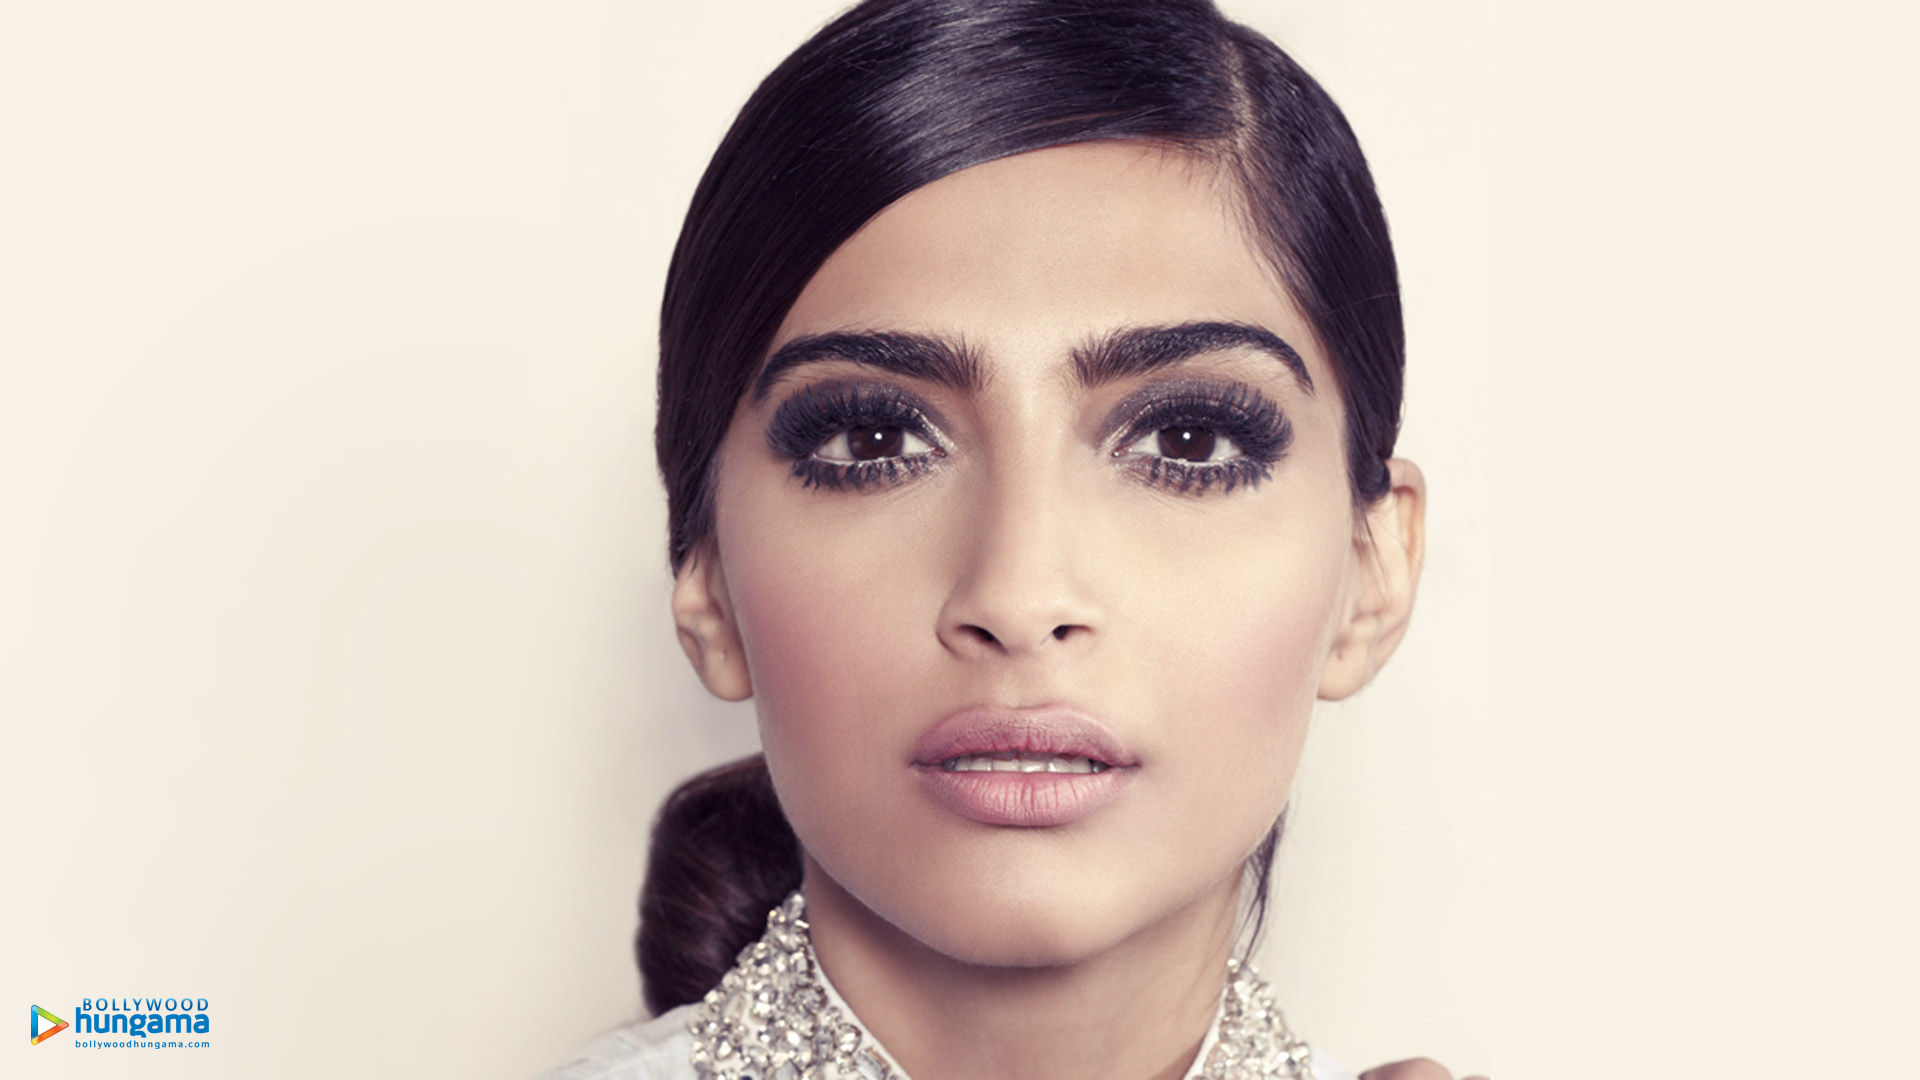 sonam kapoor wallpapers | sonam-kapoor-15 - bollywood hungama